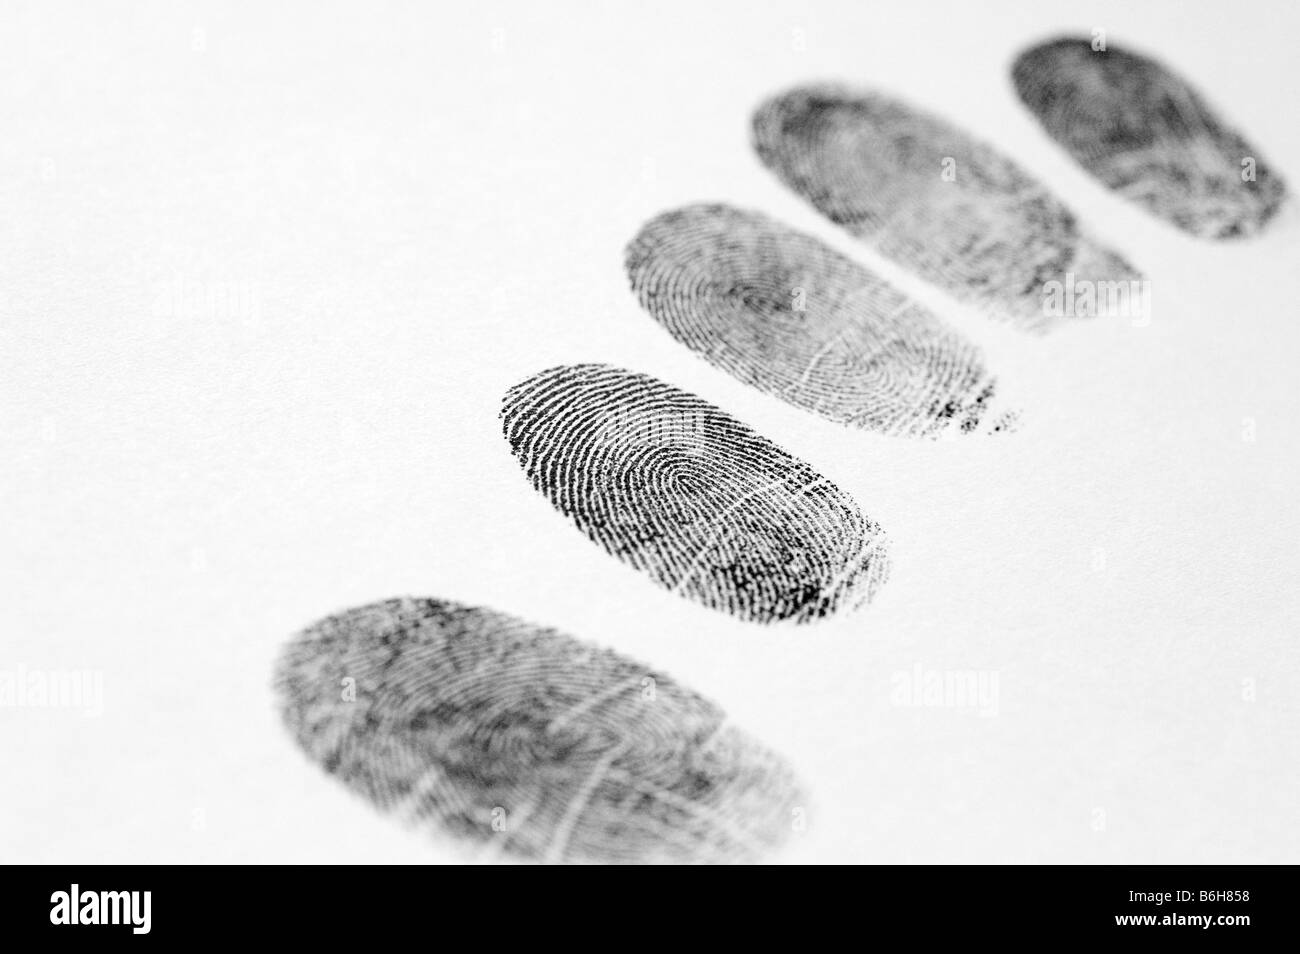 Fingerprints with a white background and shallow depth of field - Stock Image